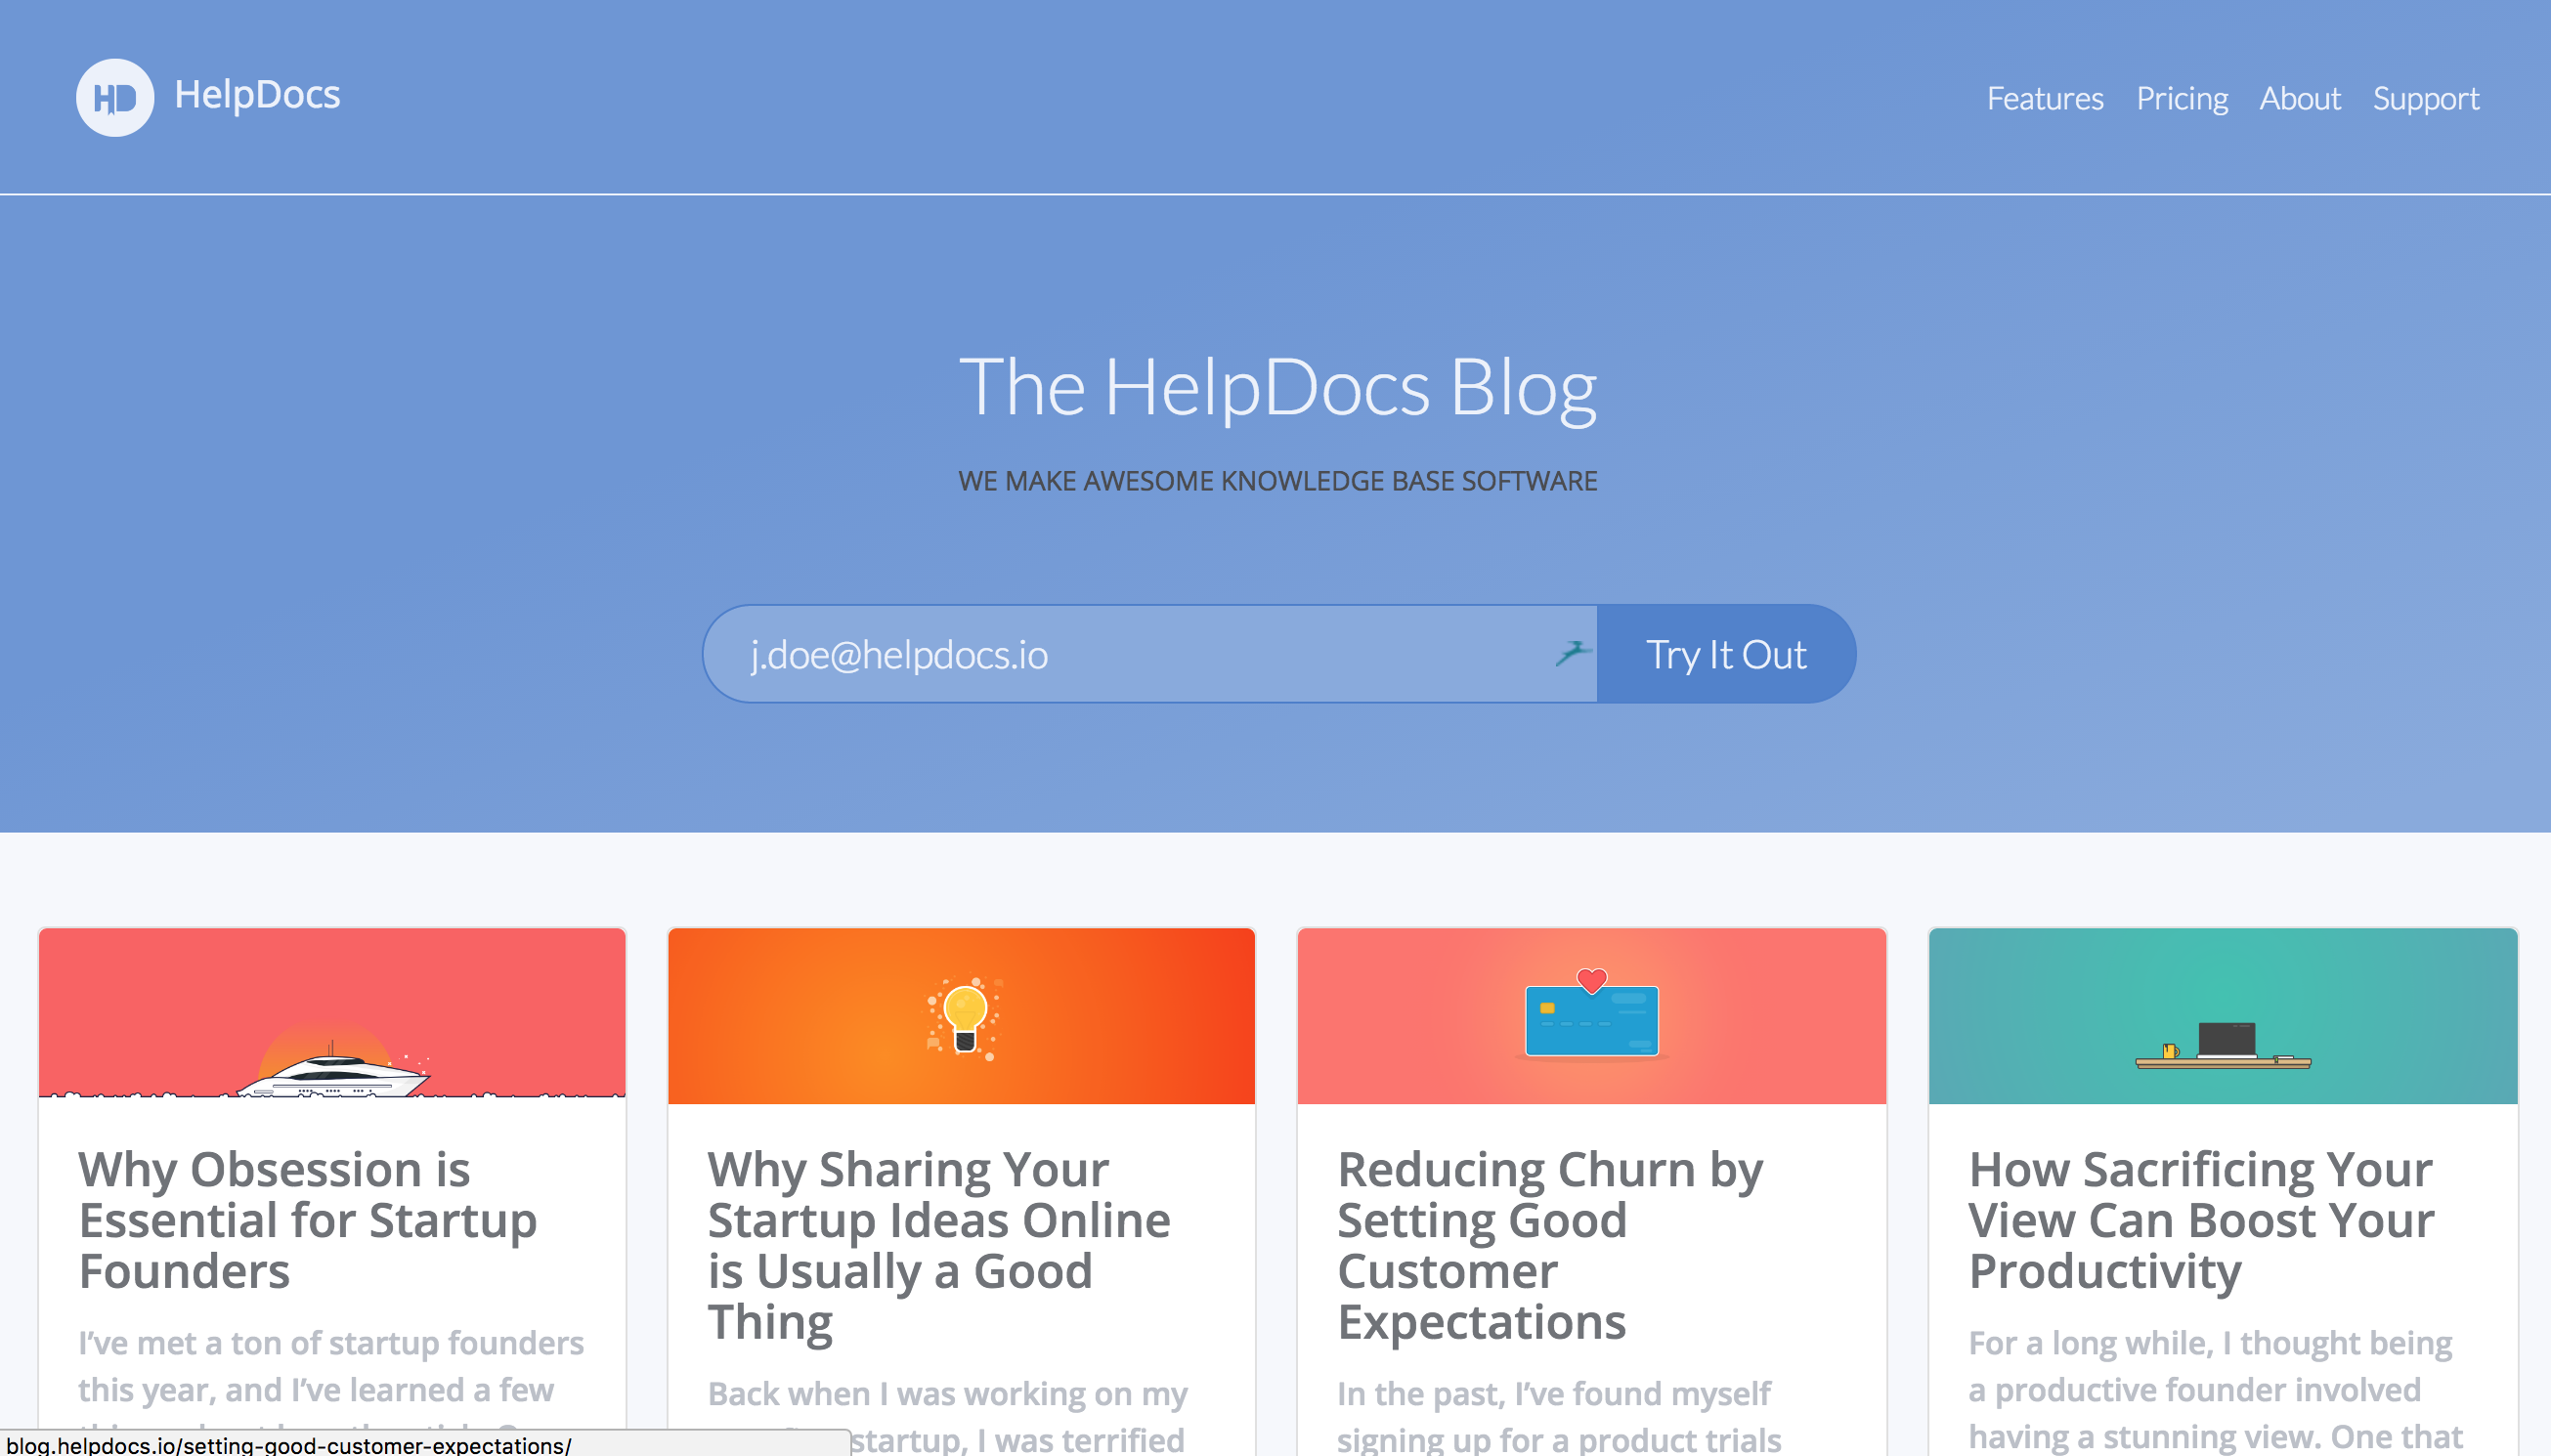 The HelpDocs Blog